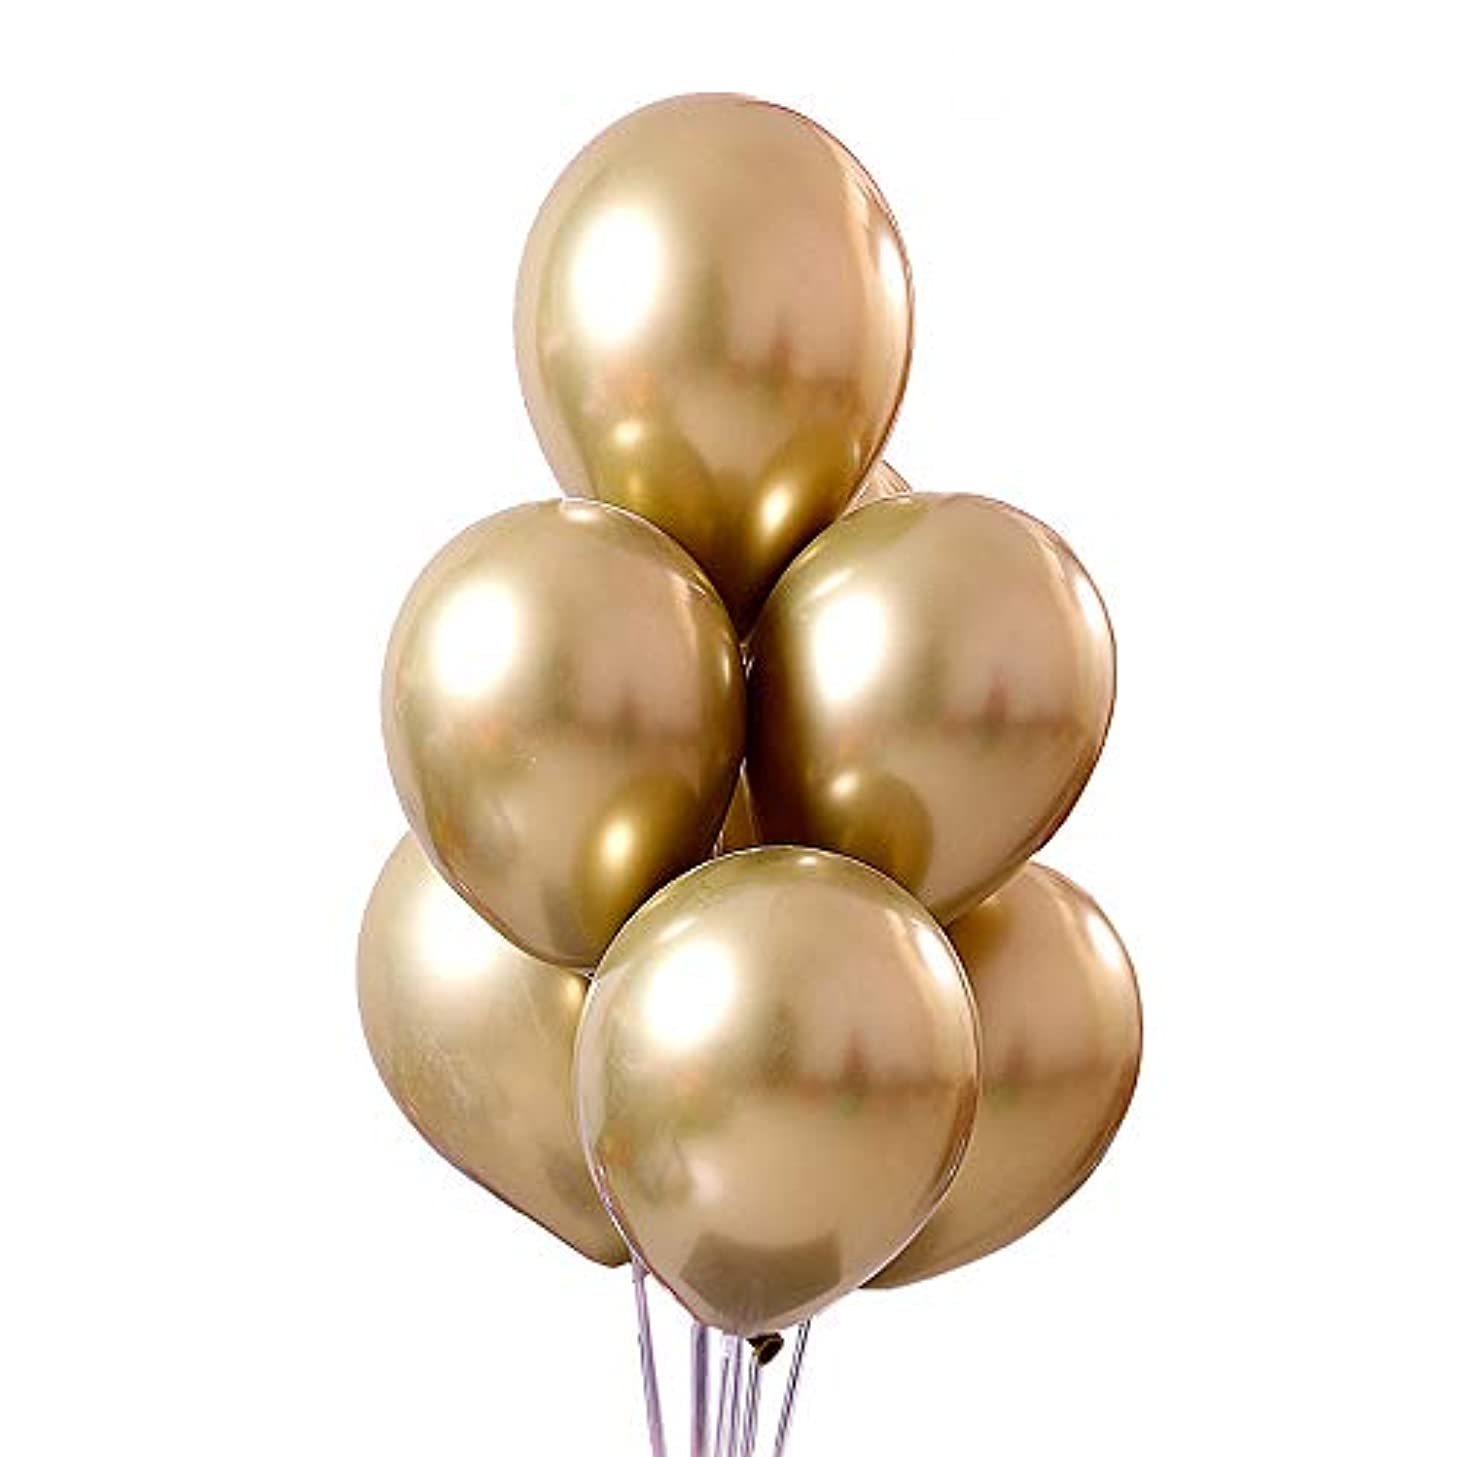 Jurxy 50 PCS Metallic Party Balloons 12'' Glossy Metal Pearl Latex Balloons Thick Pearly Chrome Alloy Inflatable Air Balloons for Birthdays, Bridal Shower - Gold